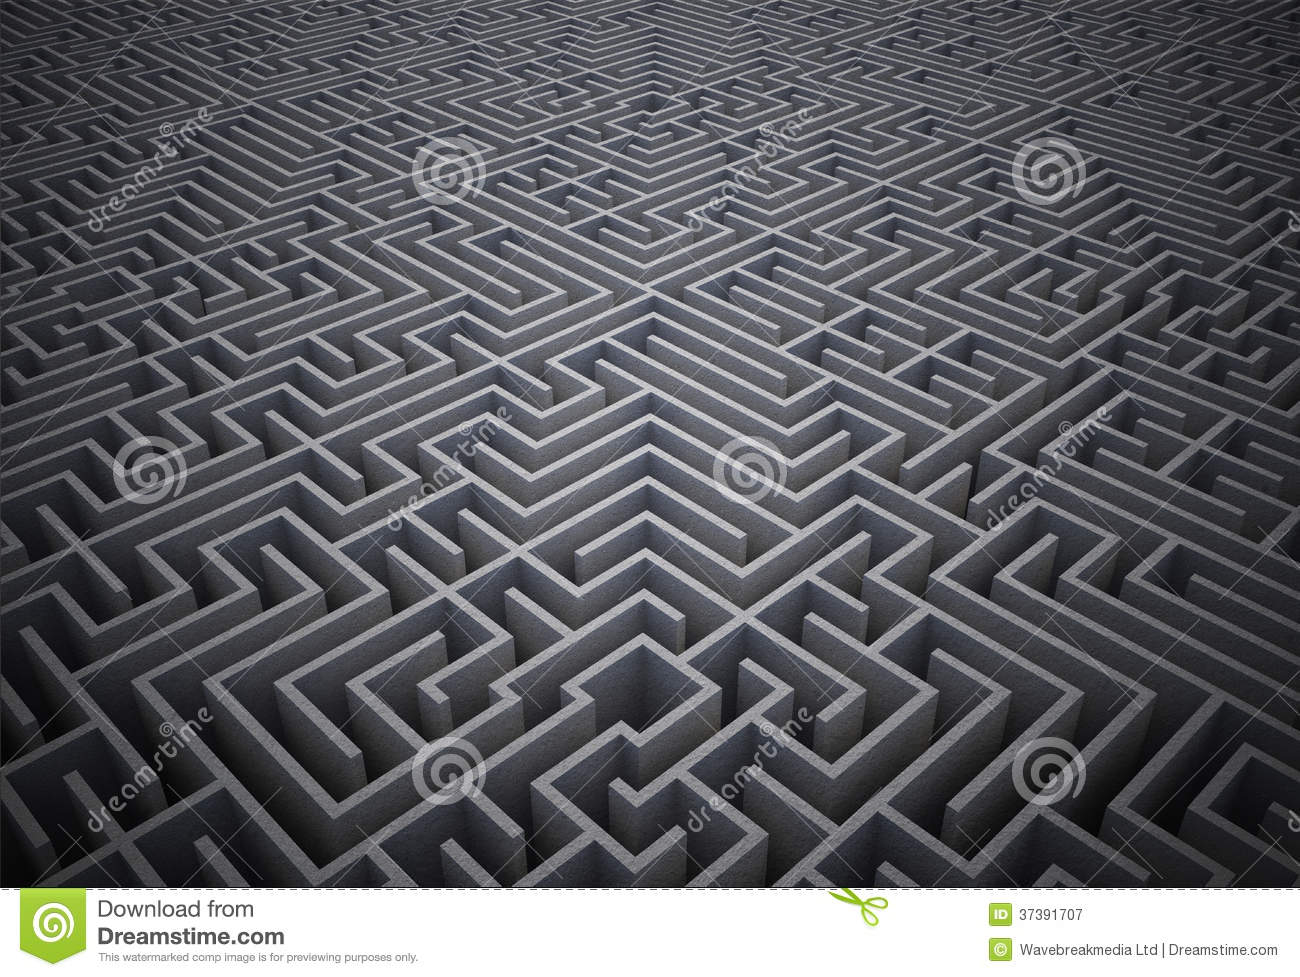 Puzzle difficile de labyrinthe illustration stock - Labyrinthe difficile ...